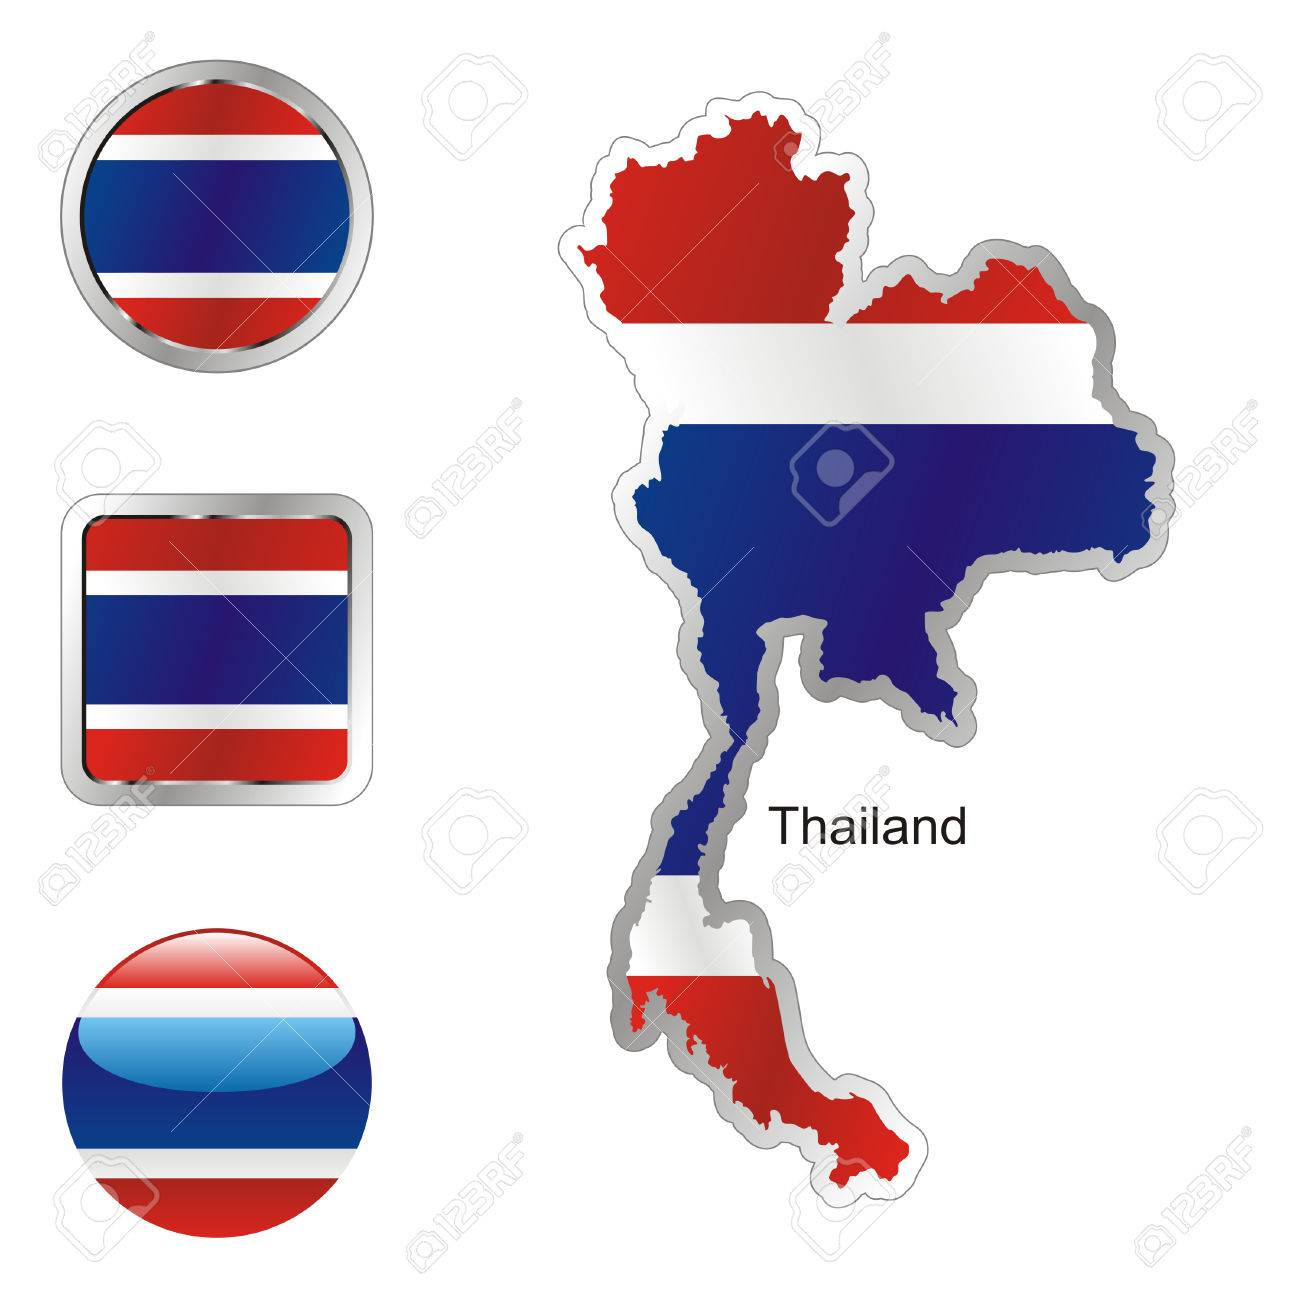 fully editable flag of thailand in map and internet buttons shape Stock Vector - 6255816